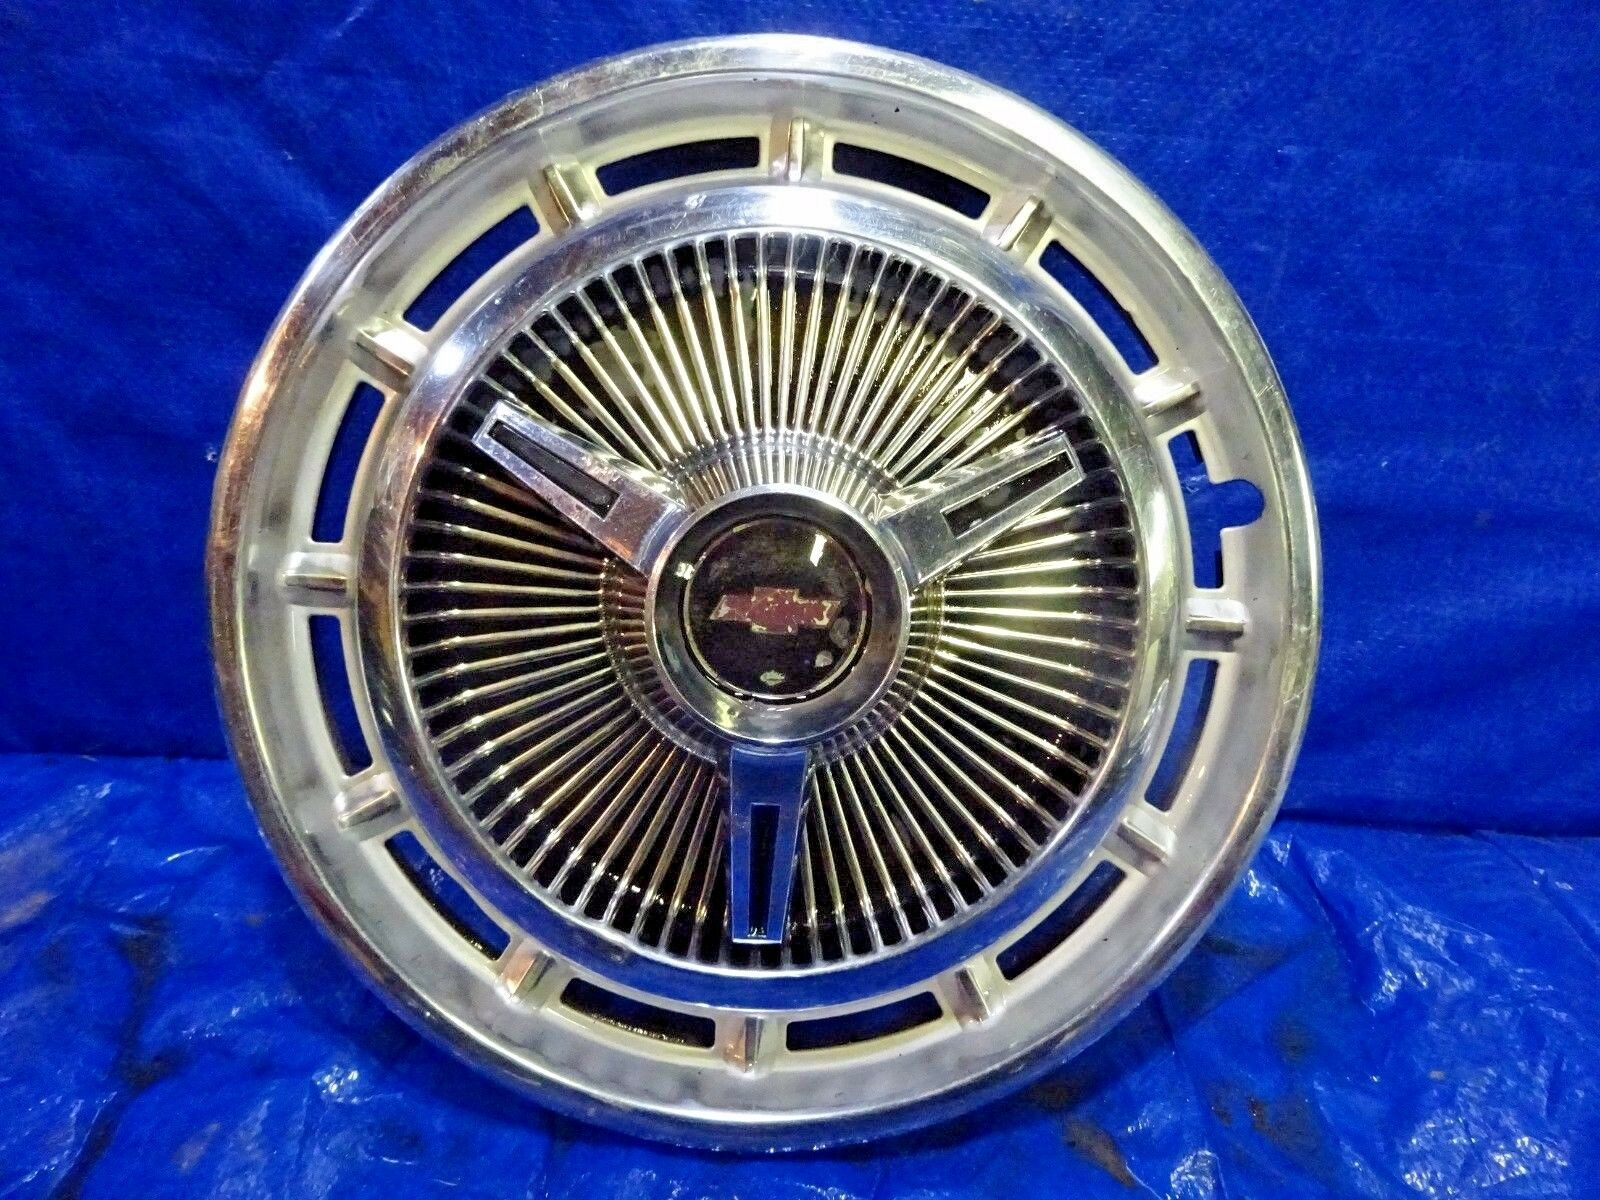 1965 1966 Chevrolet Ss Spinner Hubcaps Set Of Four Ebay Chevy Impala Wheels Norton Secured Powered By Verisign